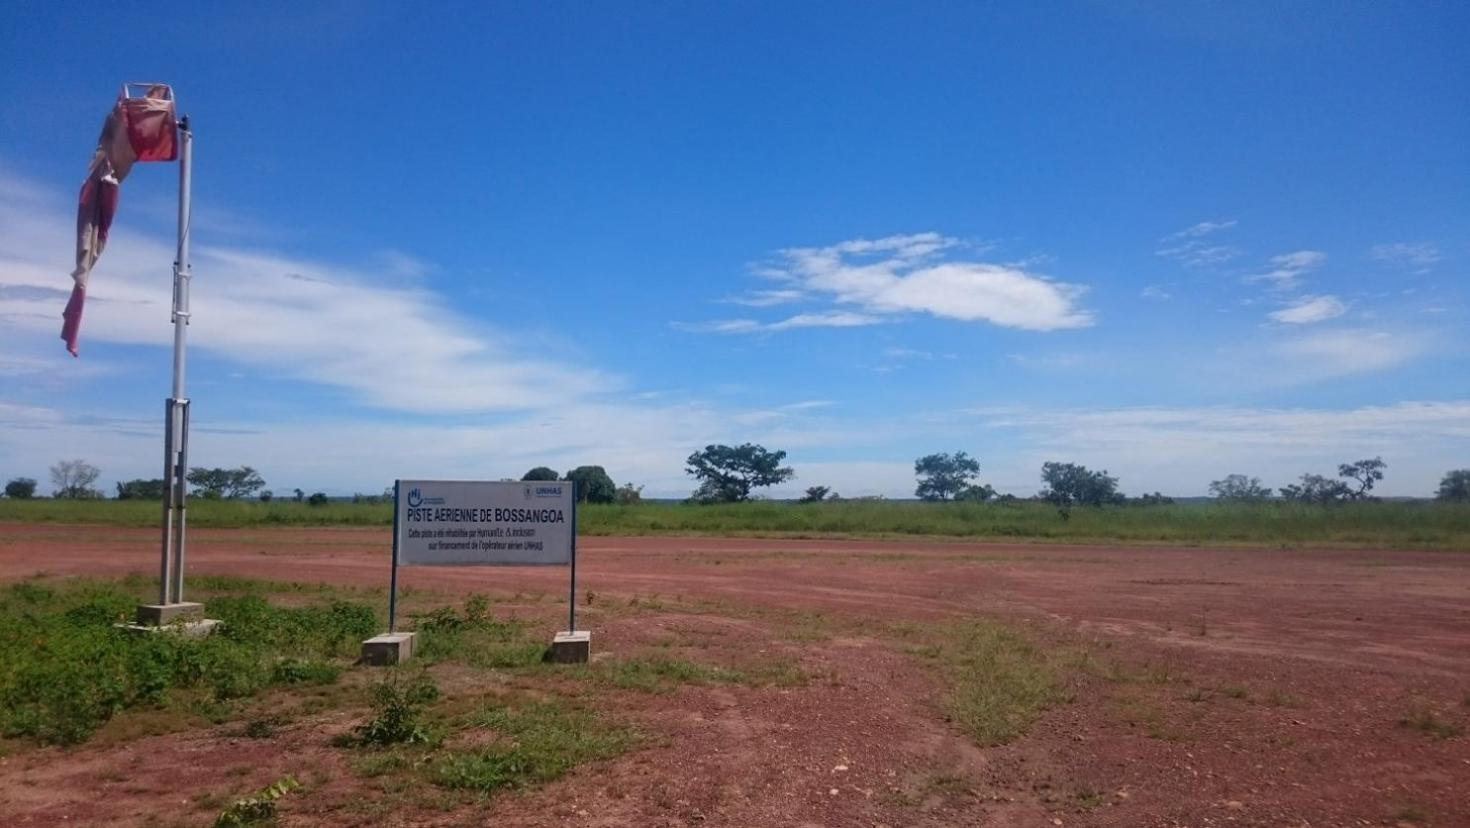 The airfield at Bossangoa